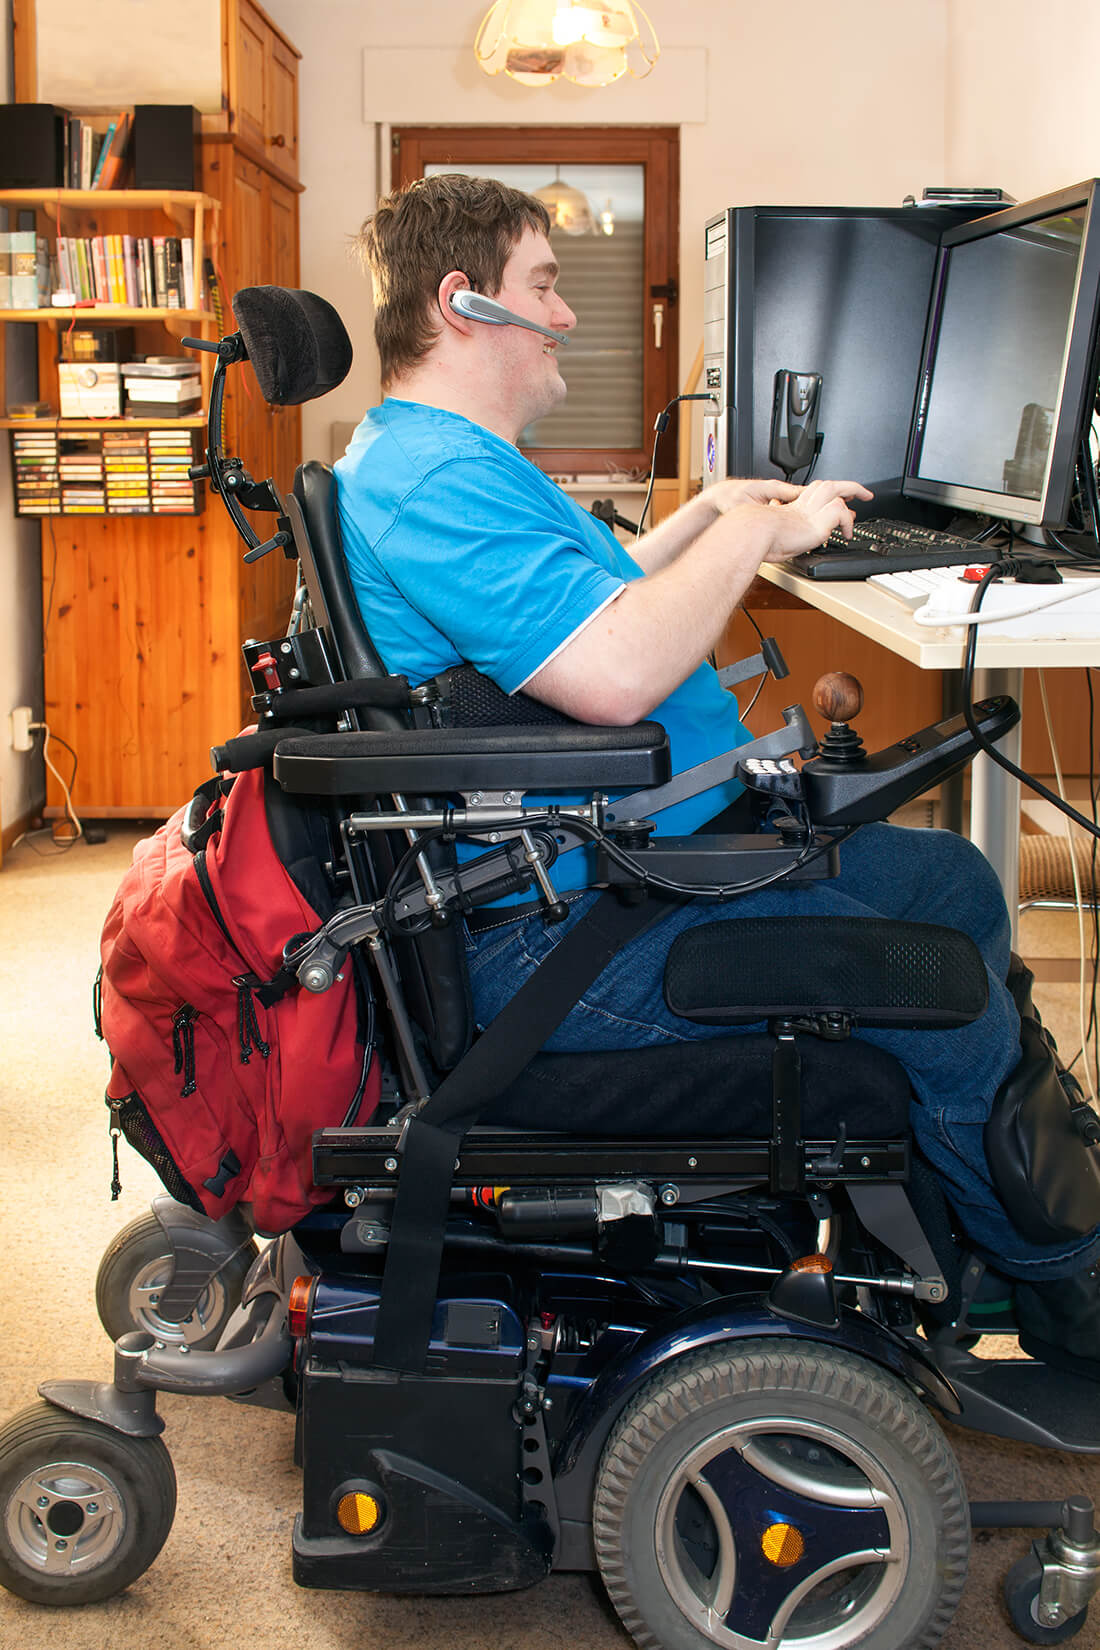 Gentleman with cerebral palsy in electric wheelchair user using a computer